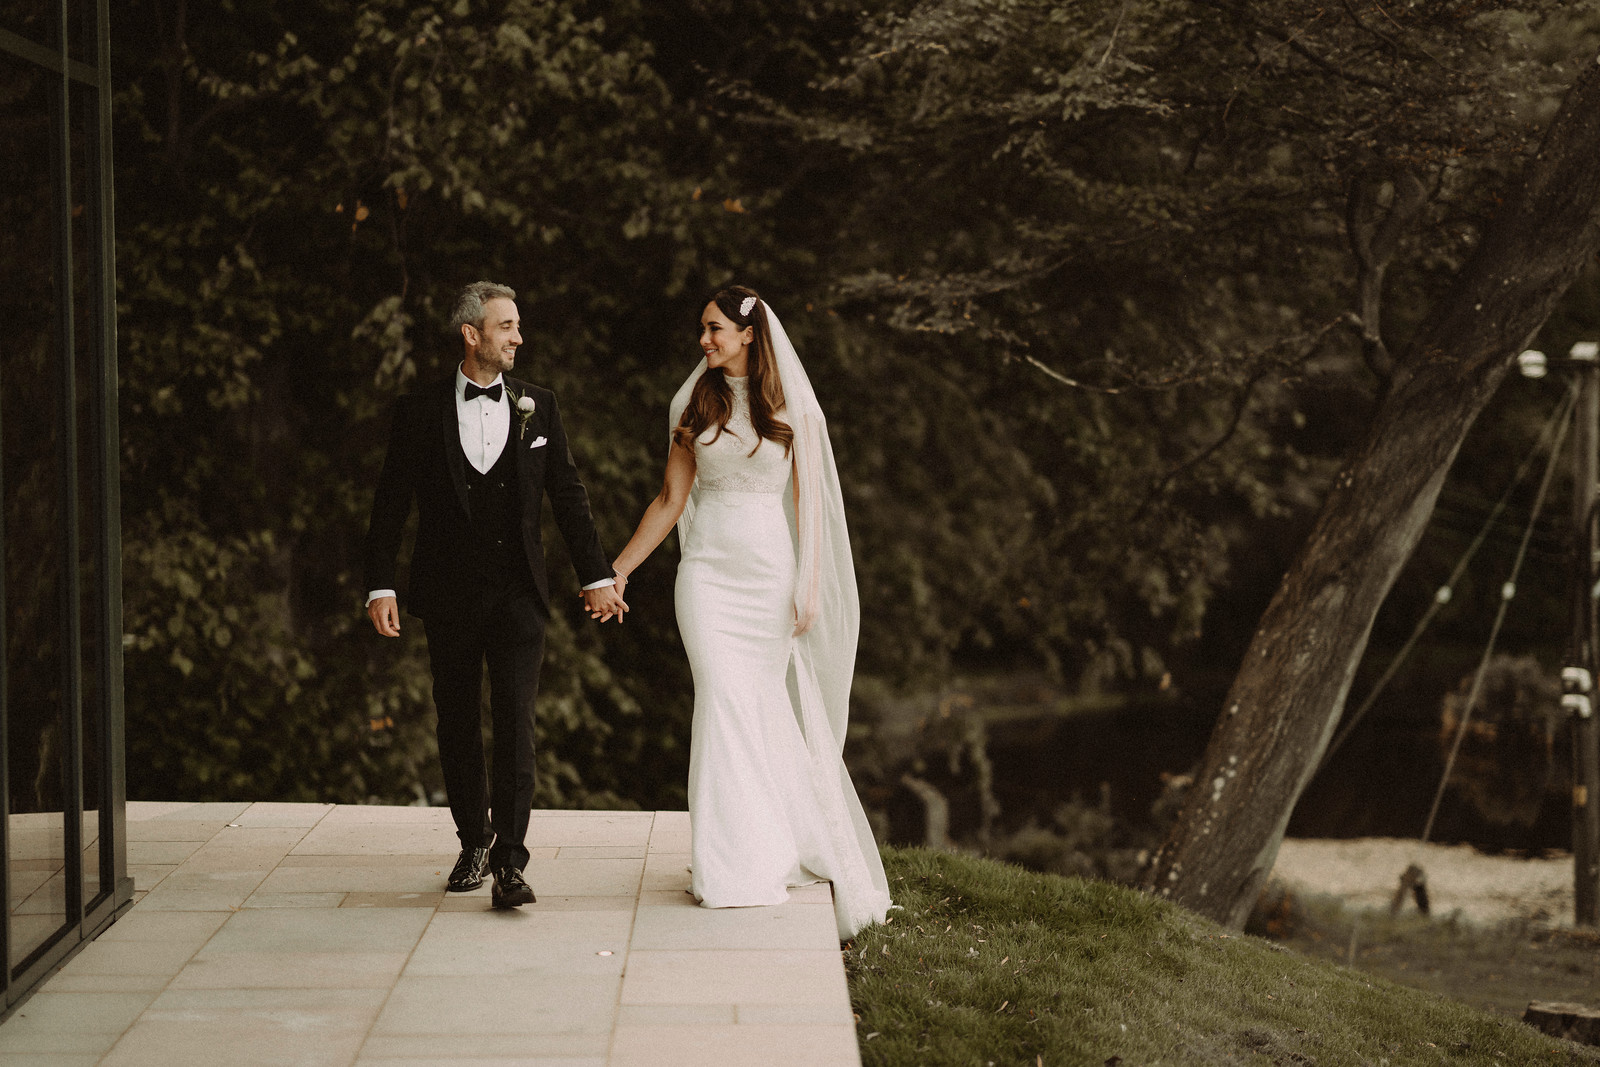 Bride and groom walk outside their venue holding hands and smiling at each other. Wedding pictures